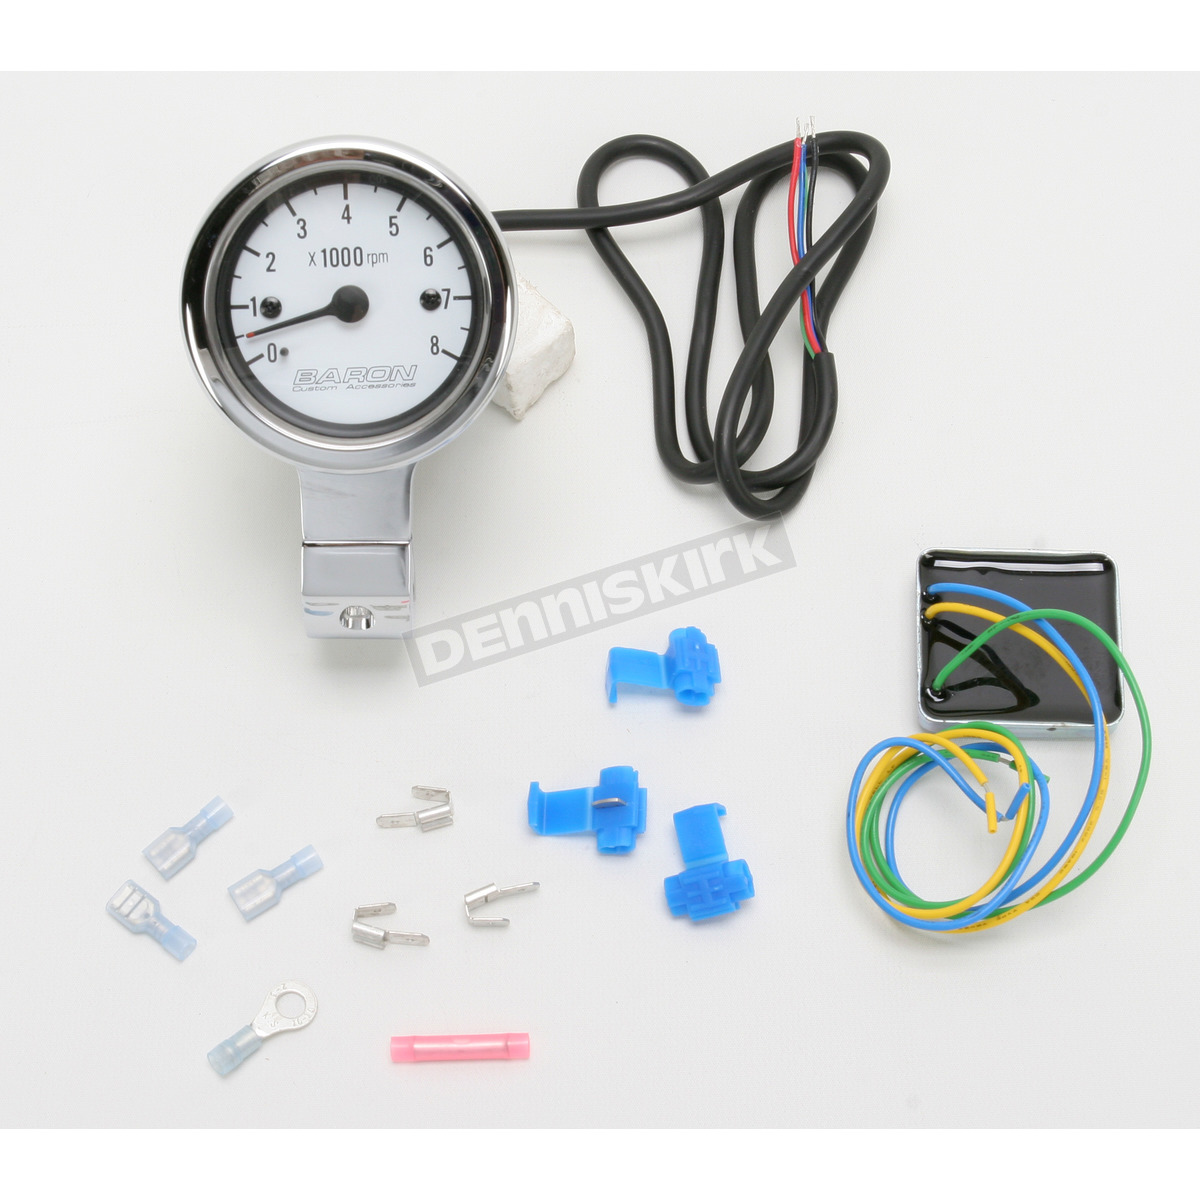 3 in. Bullet Tachometer White Face for 1 1/4 in. Bars - BA-7571U  In Tachometer Wiring on